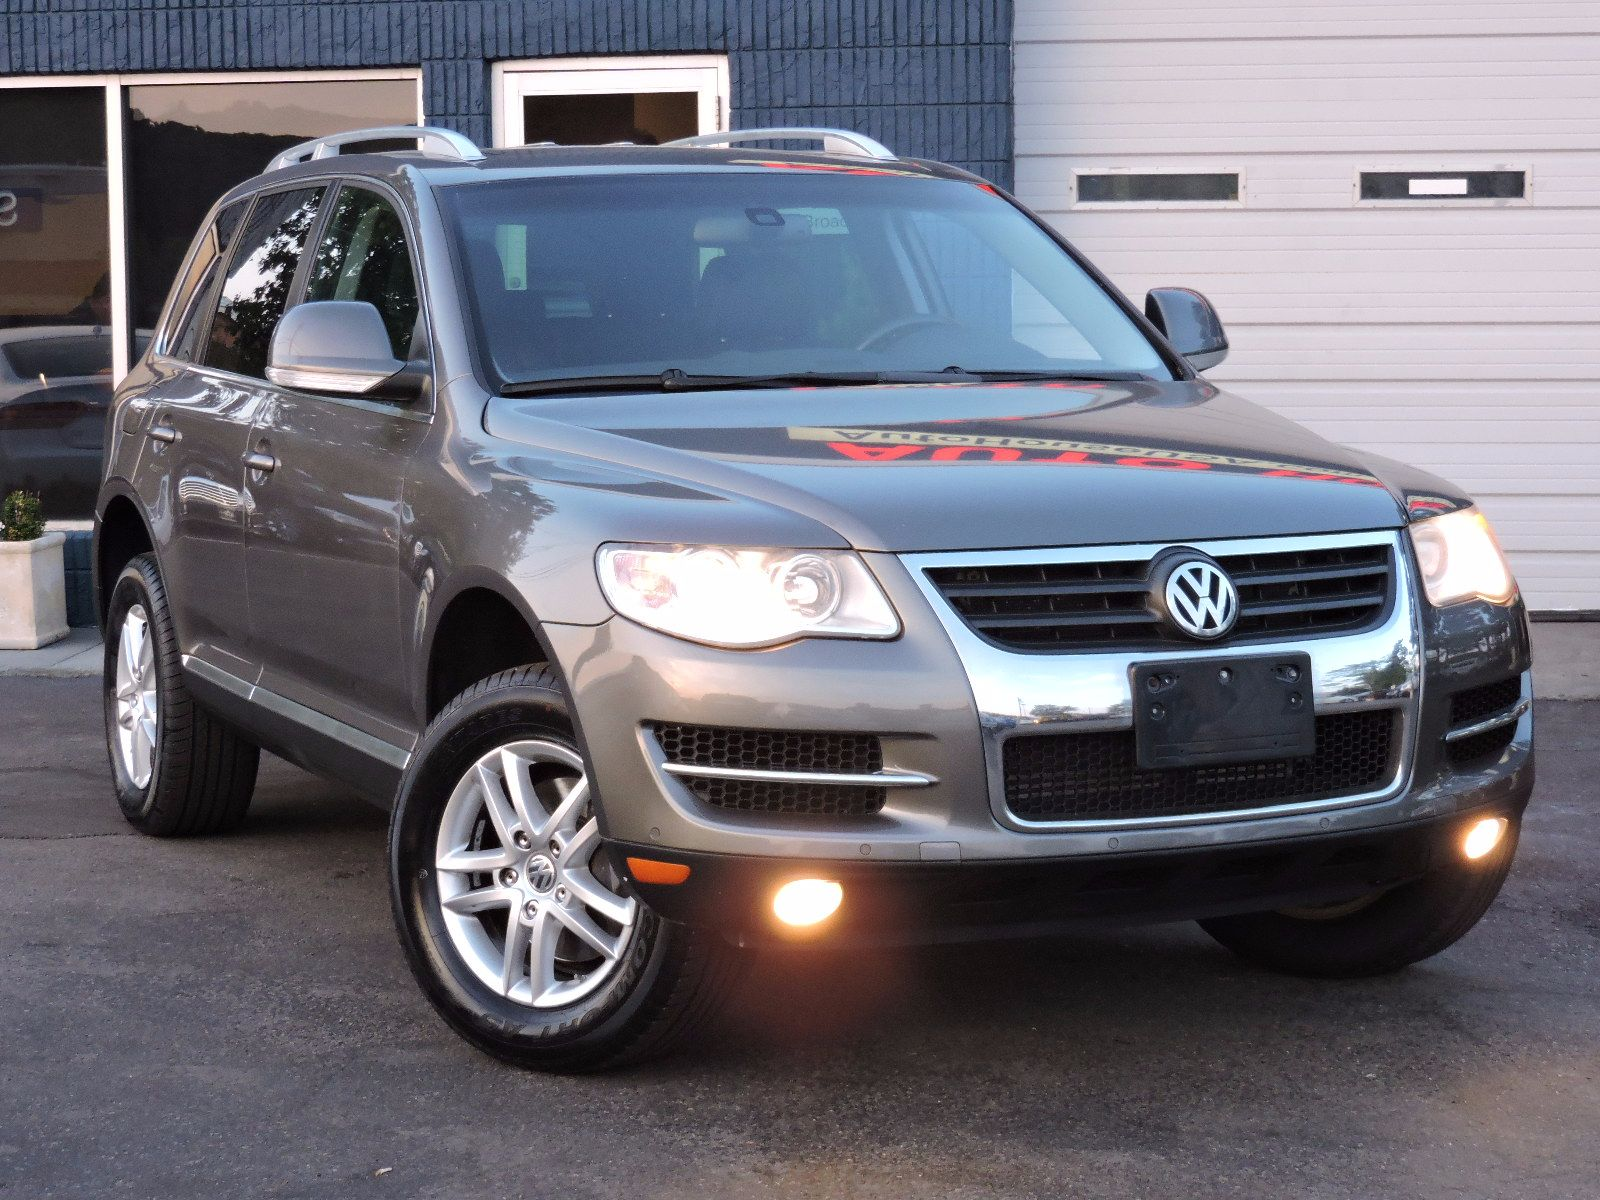 2008 Volkswagen Touareg 2 - 4Motion - All Wheel Drive